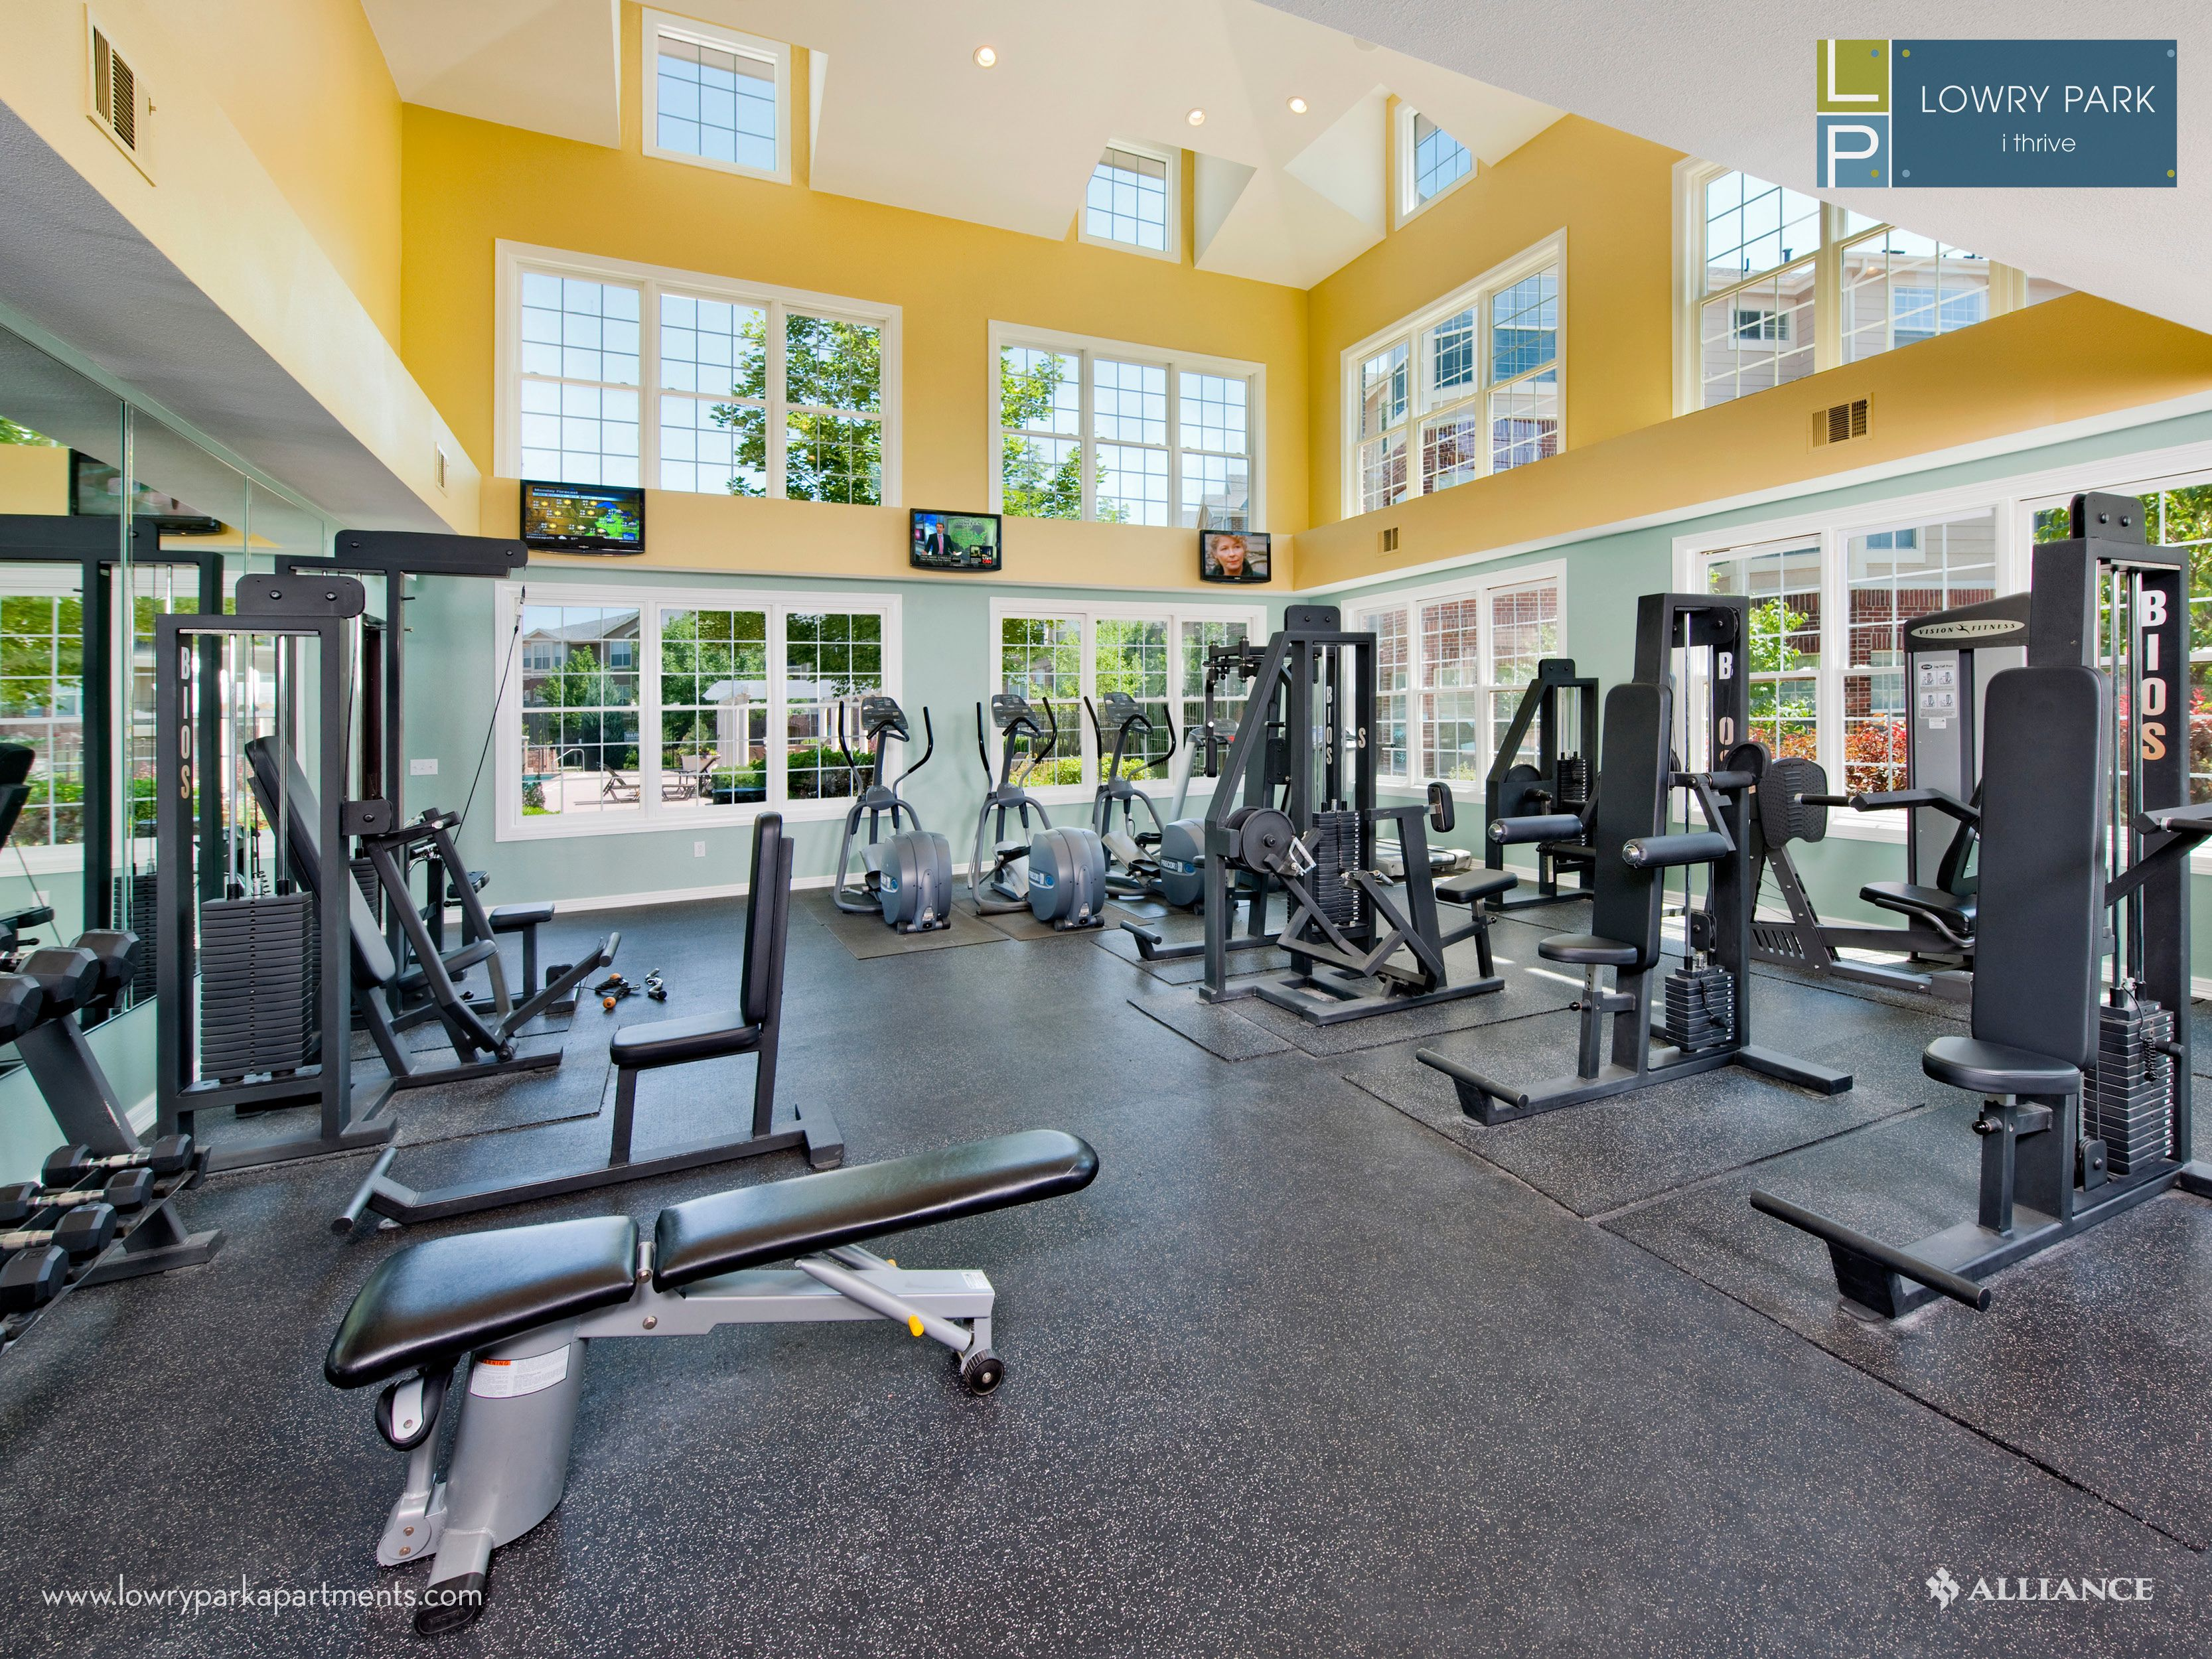 The Gym at Lowry Park Apartments in Denver, CO